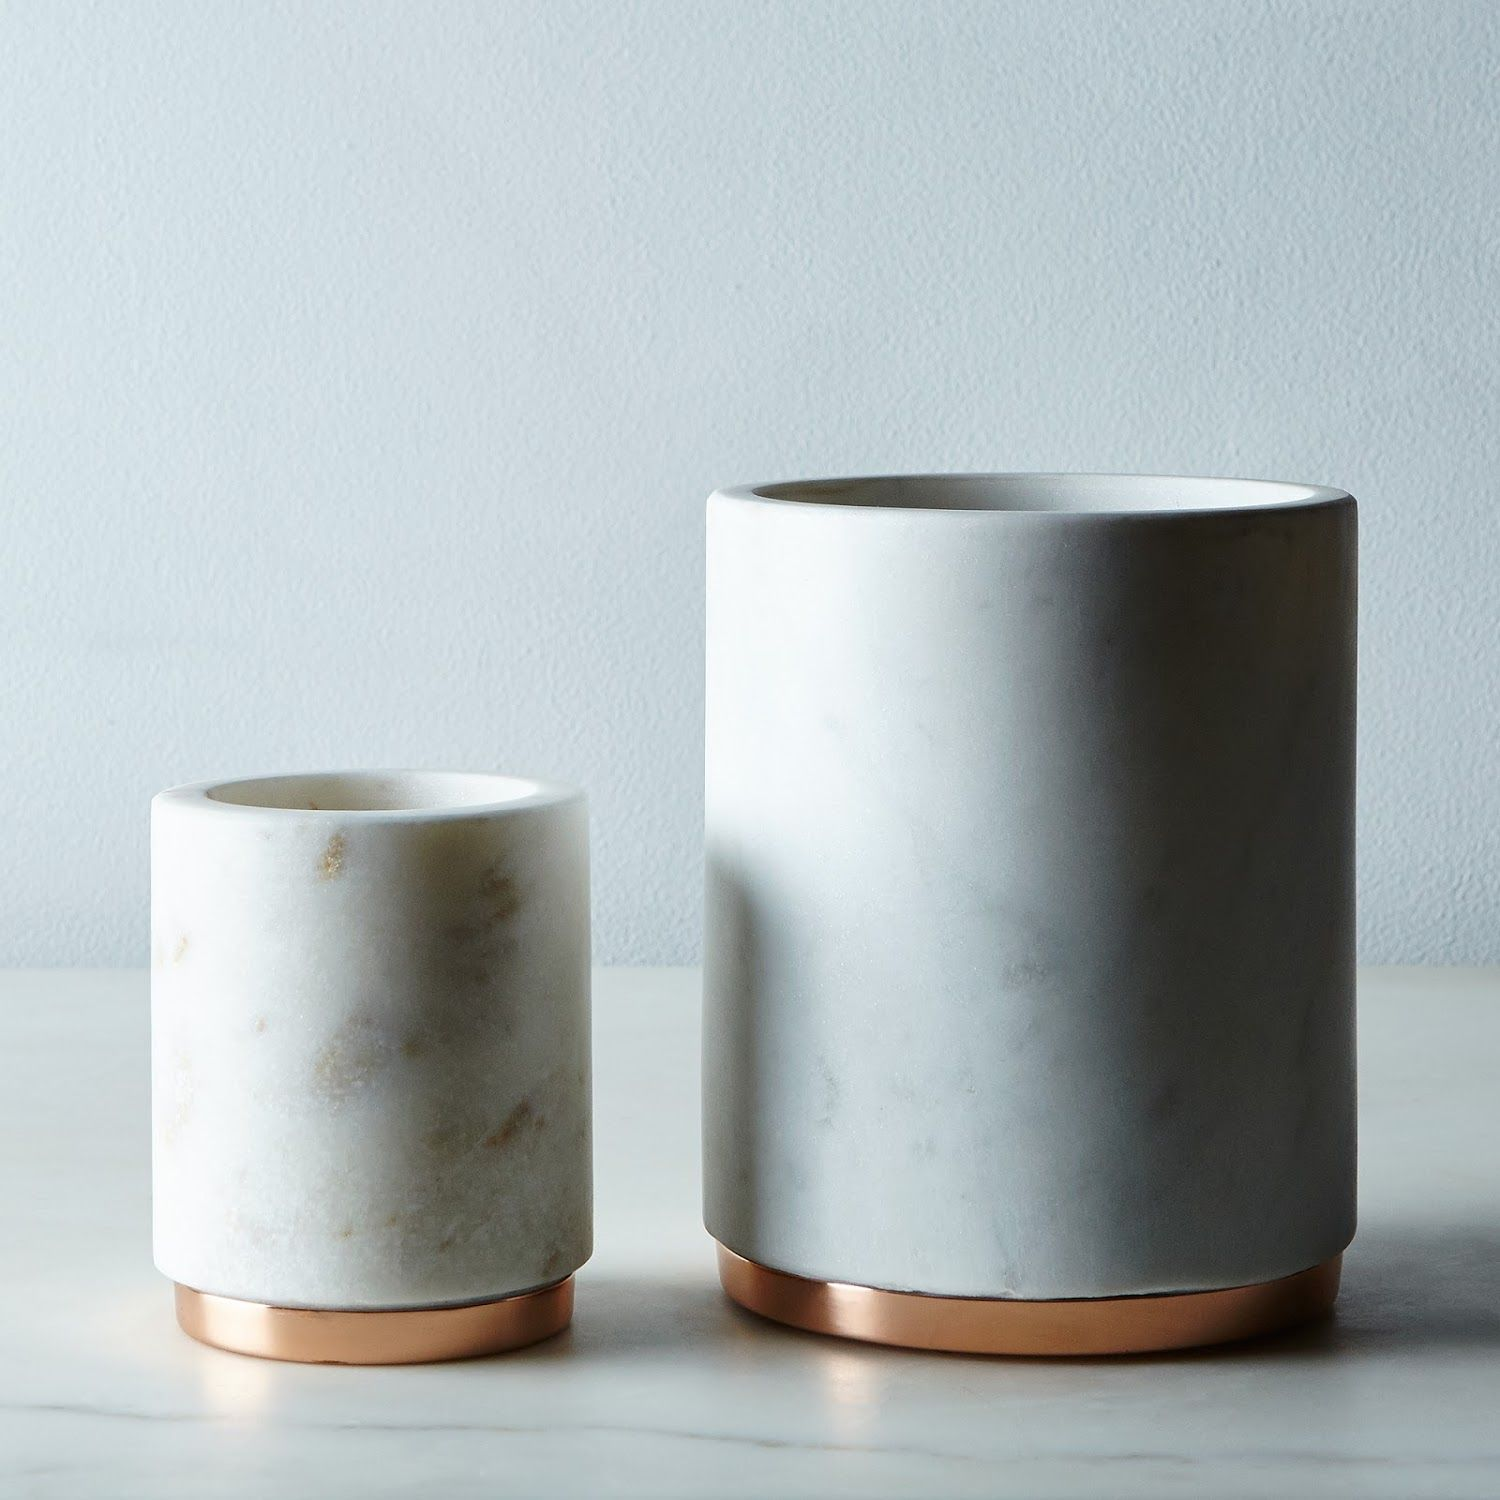 Marble & Metal Canister | Marbles, Wooden tables and Minimalist